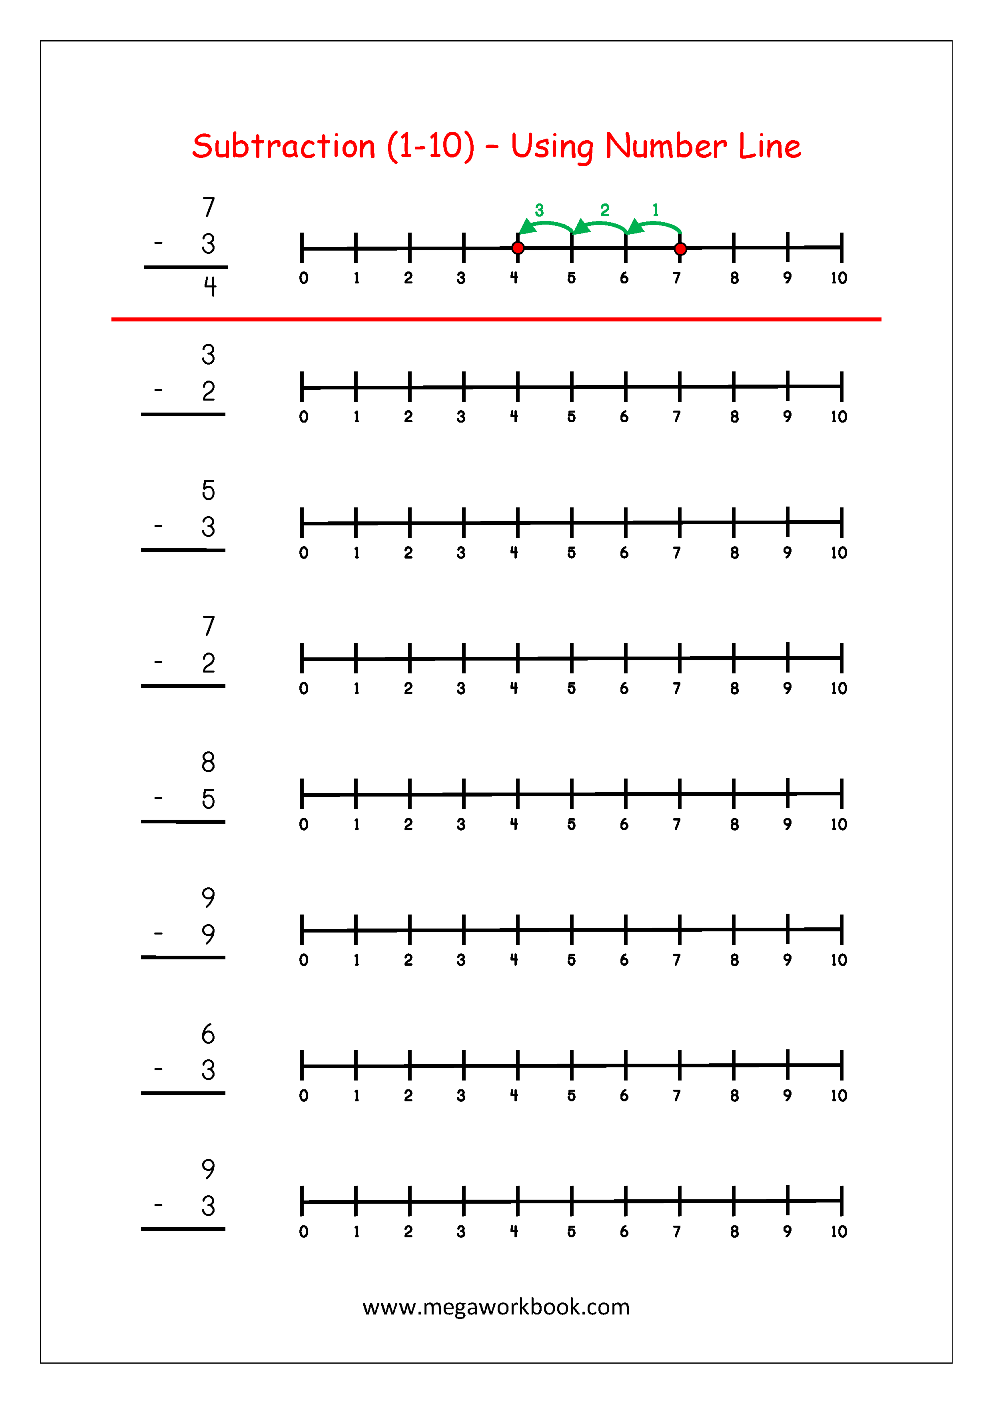 Subtraction Using A Number Line Worksheet Scalien – Subtracting on a Number Line Worksheets